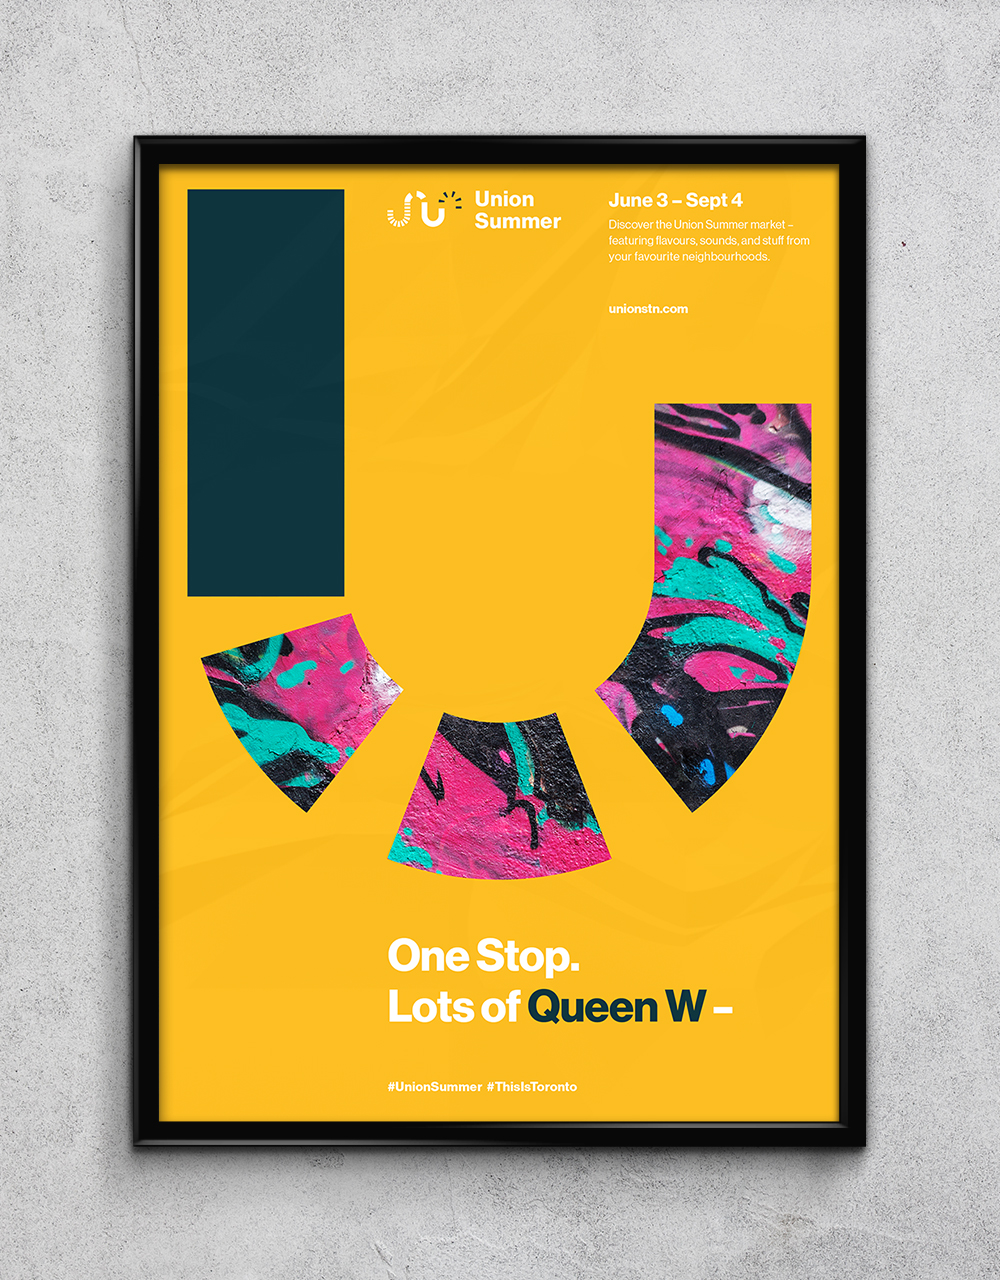 UNION_Poster Mockup Frame_Queen W.jpg